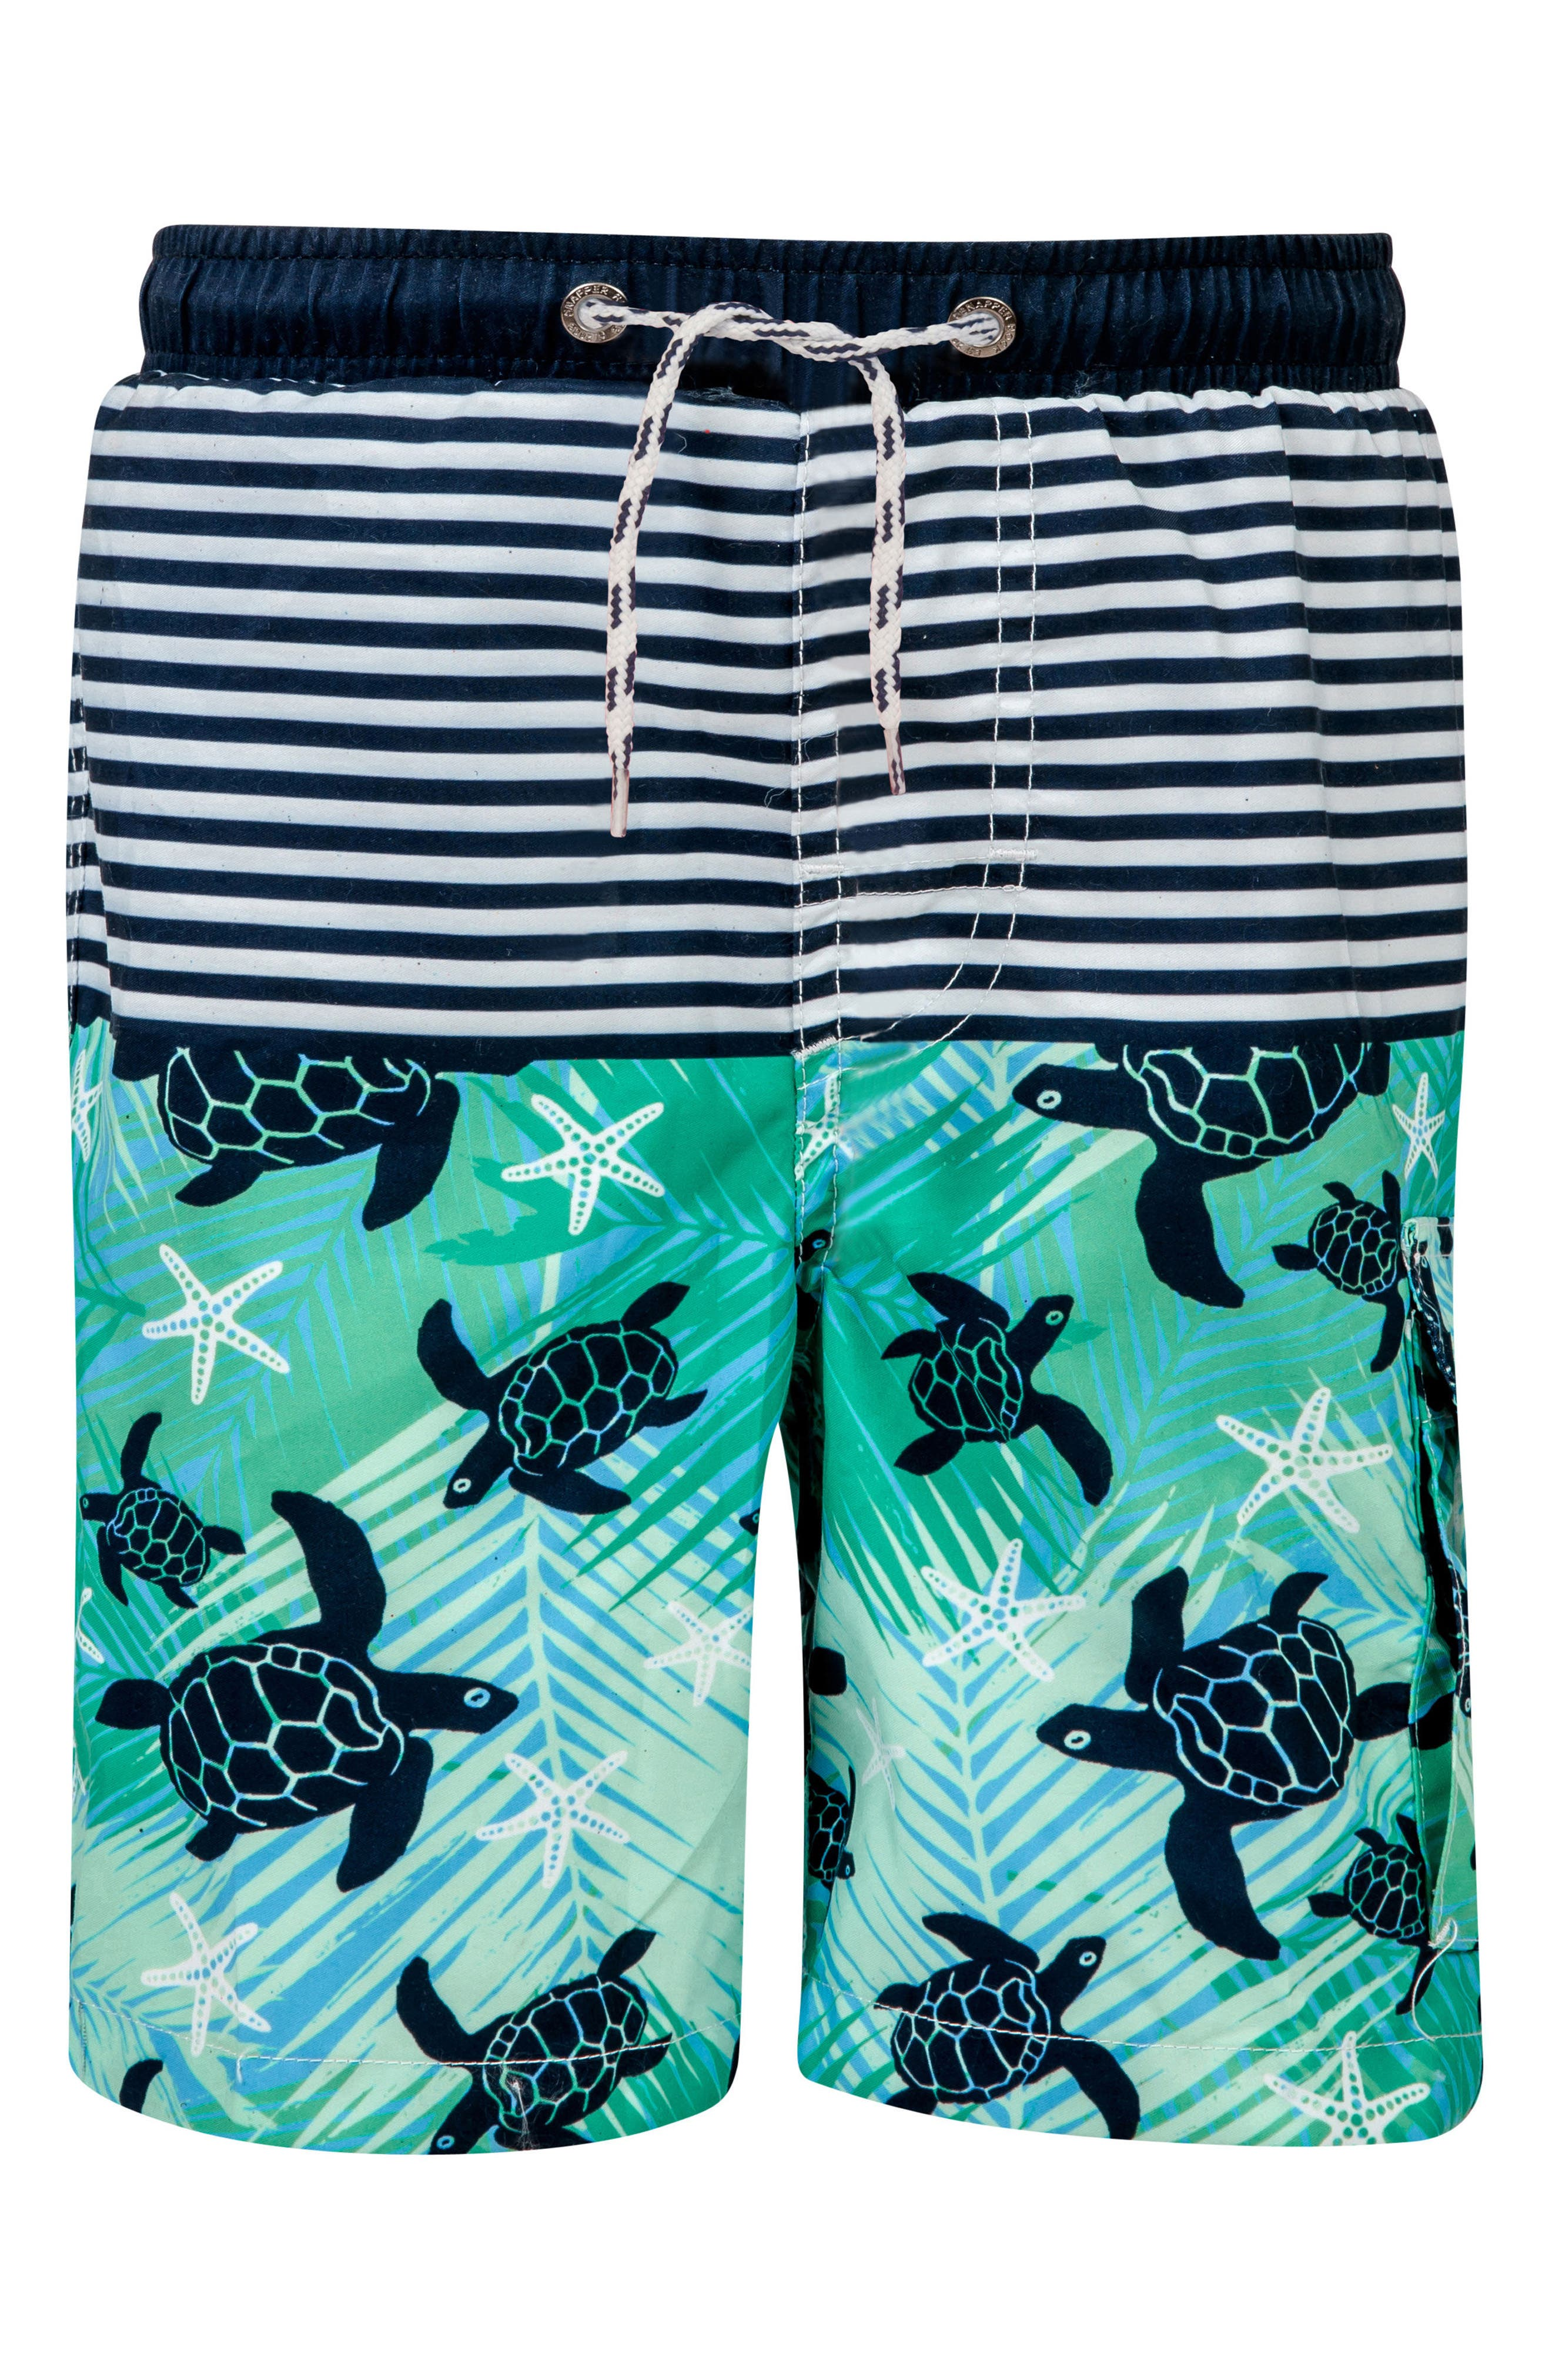 Turtle Board Shorts,                         Main,                         color, Green/ Navy/ White